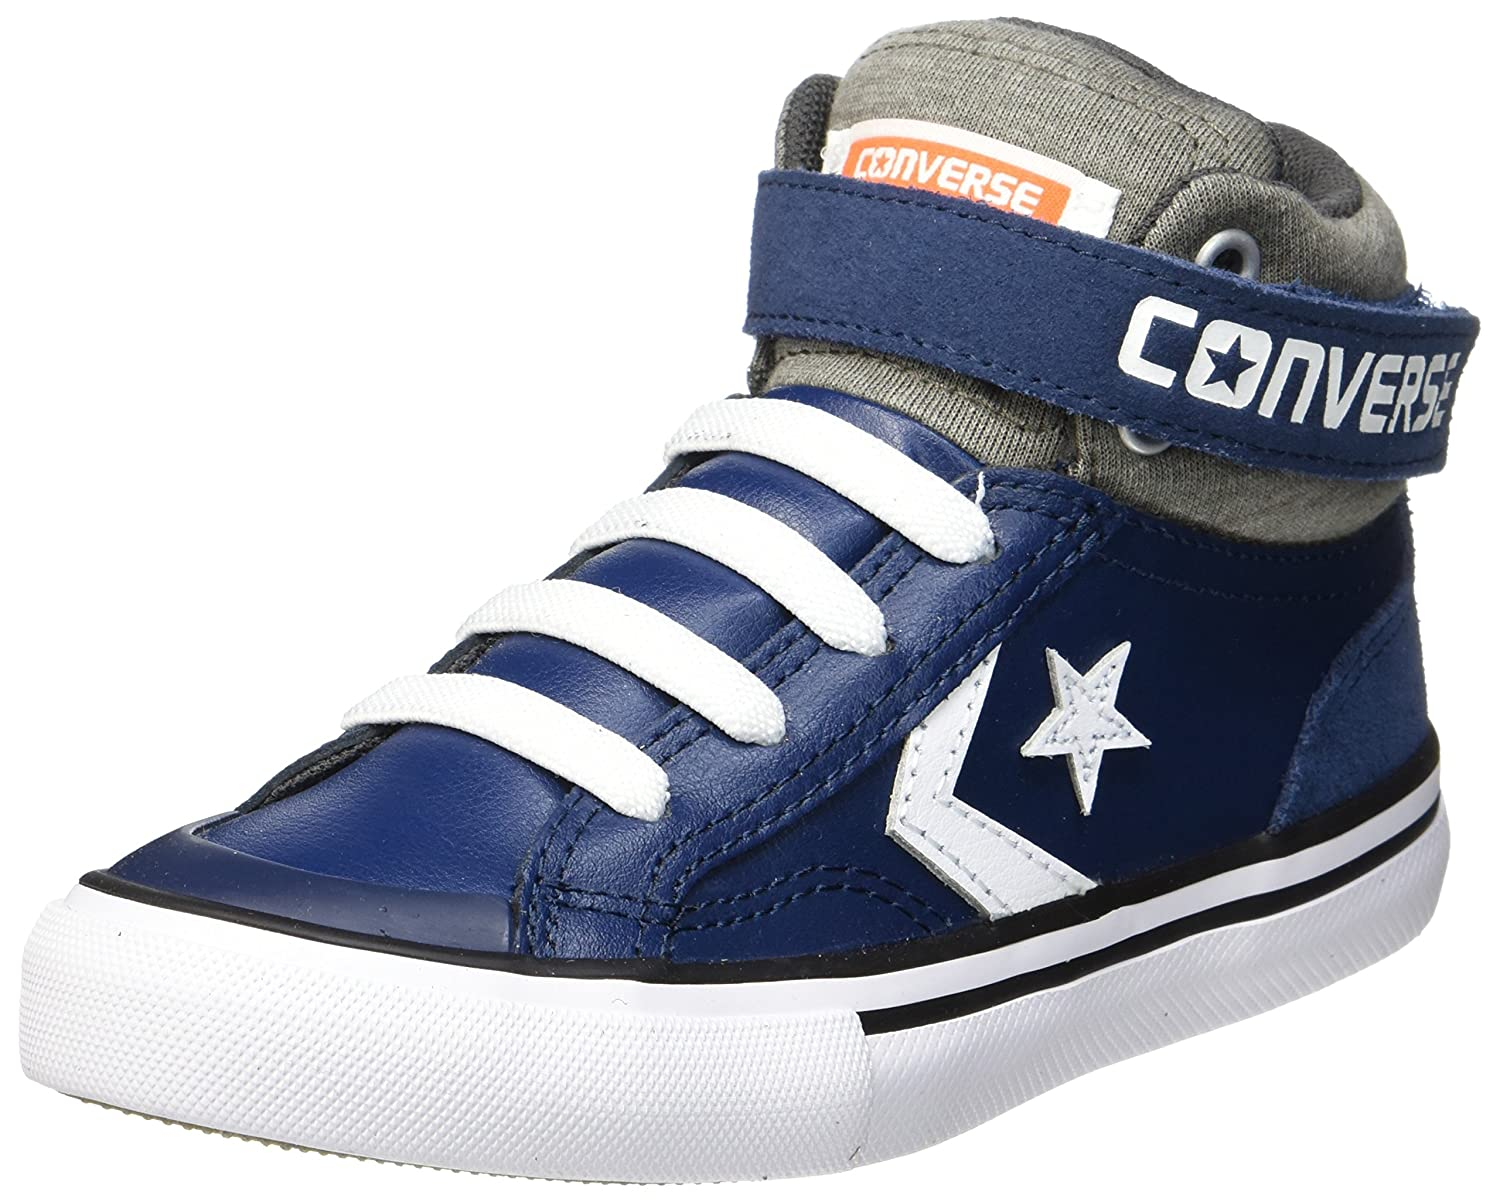 Converse CTAS Hi PC Leather, Baskets Hautes Mixte Enfant, Blu (Midnight Navy/Inked/Black), 34 EU